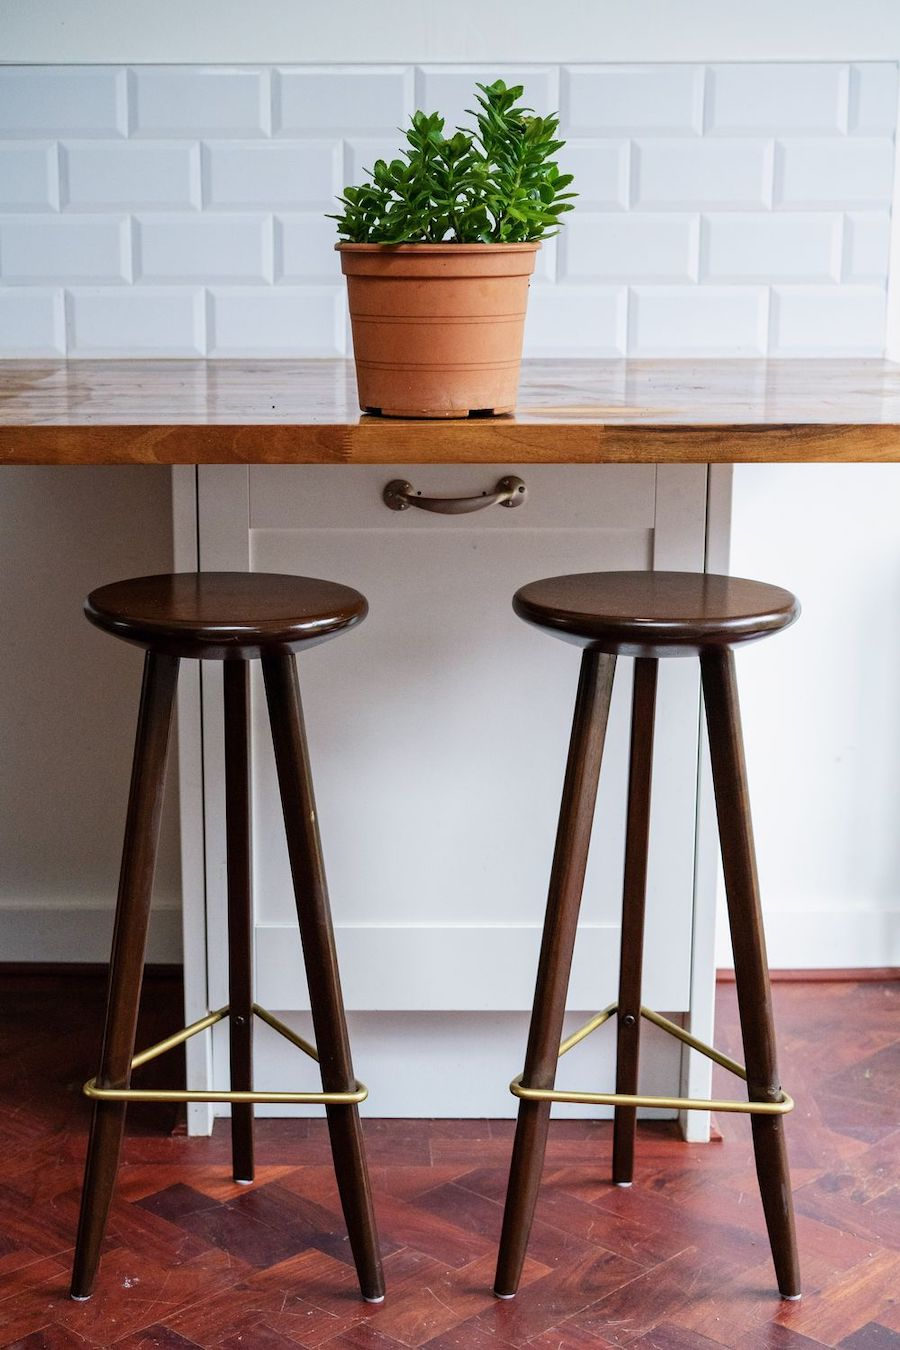 Tips for Buying Bar Stools for Your Home Bar or Kitchen